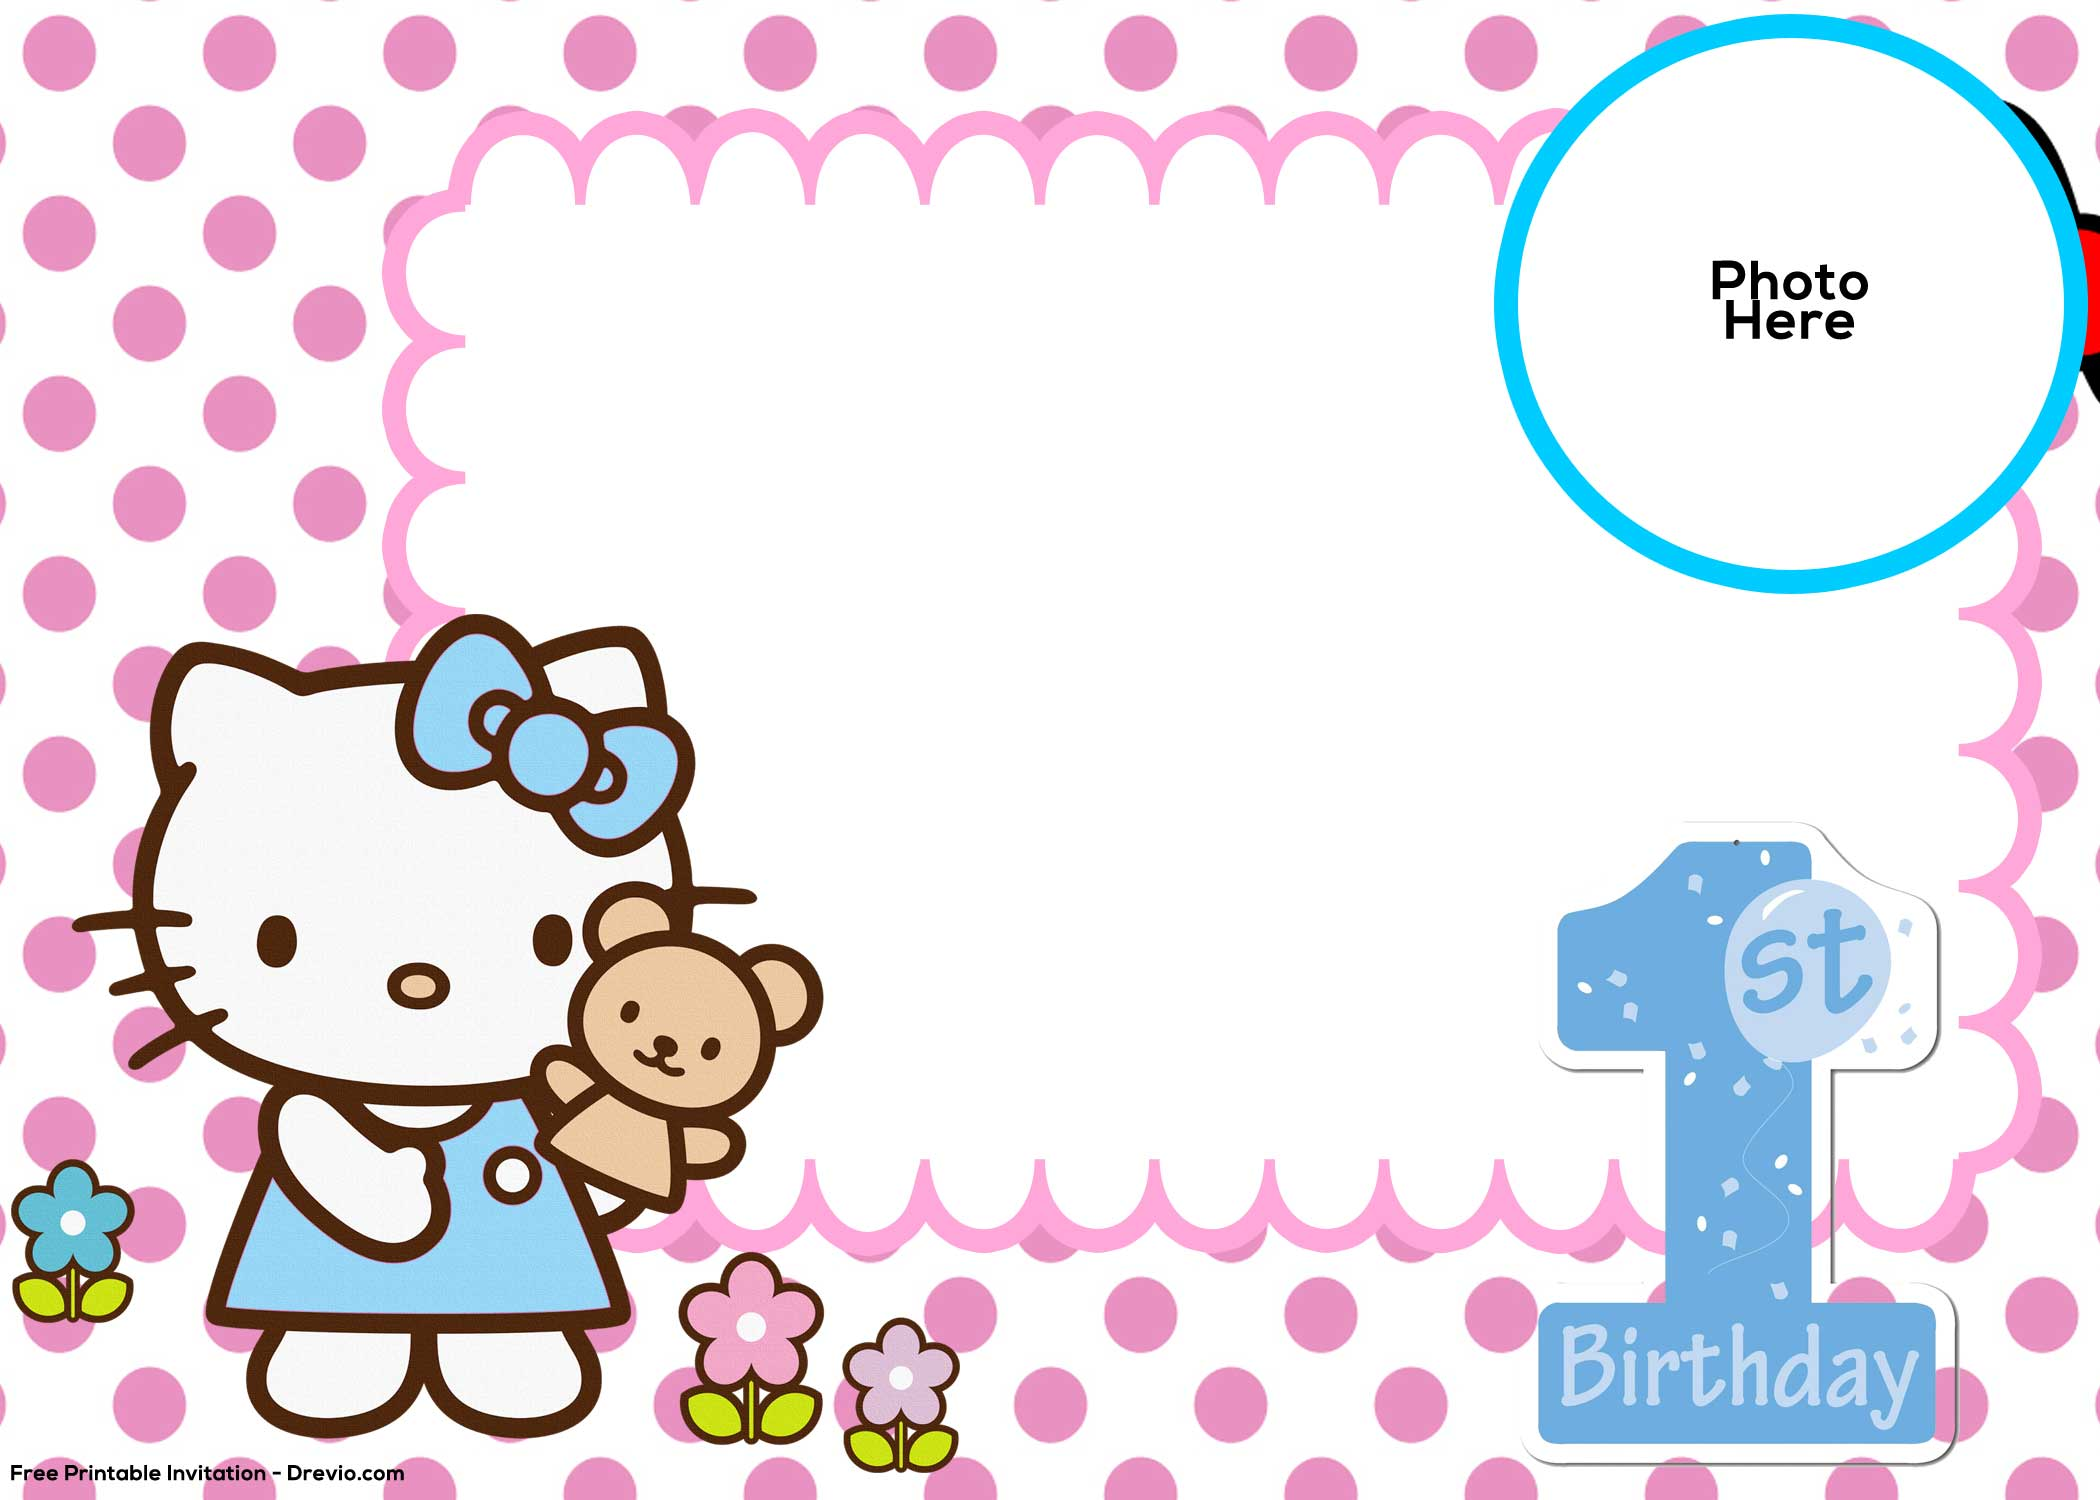 FREE Hello Kitty 1st Birthday Invitation Template FREE Invitation